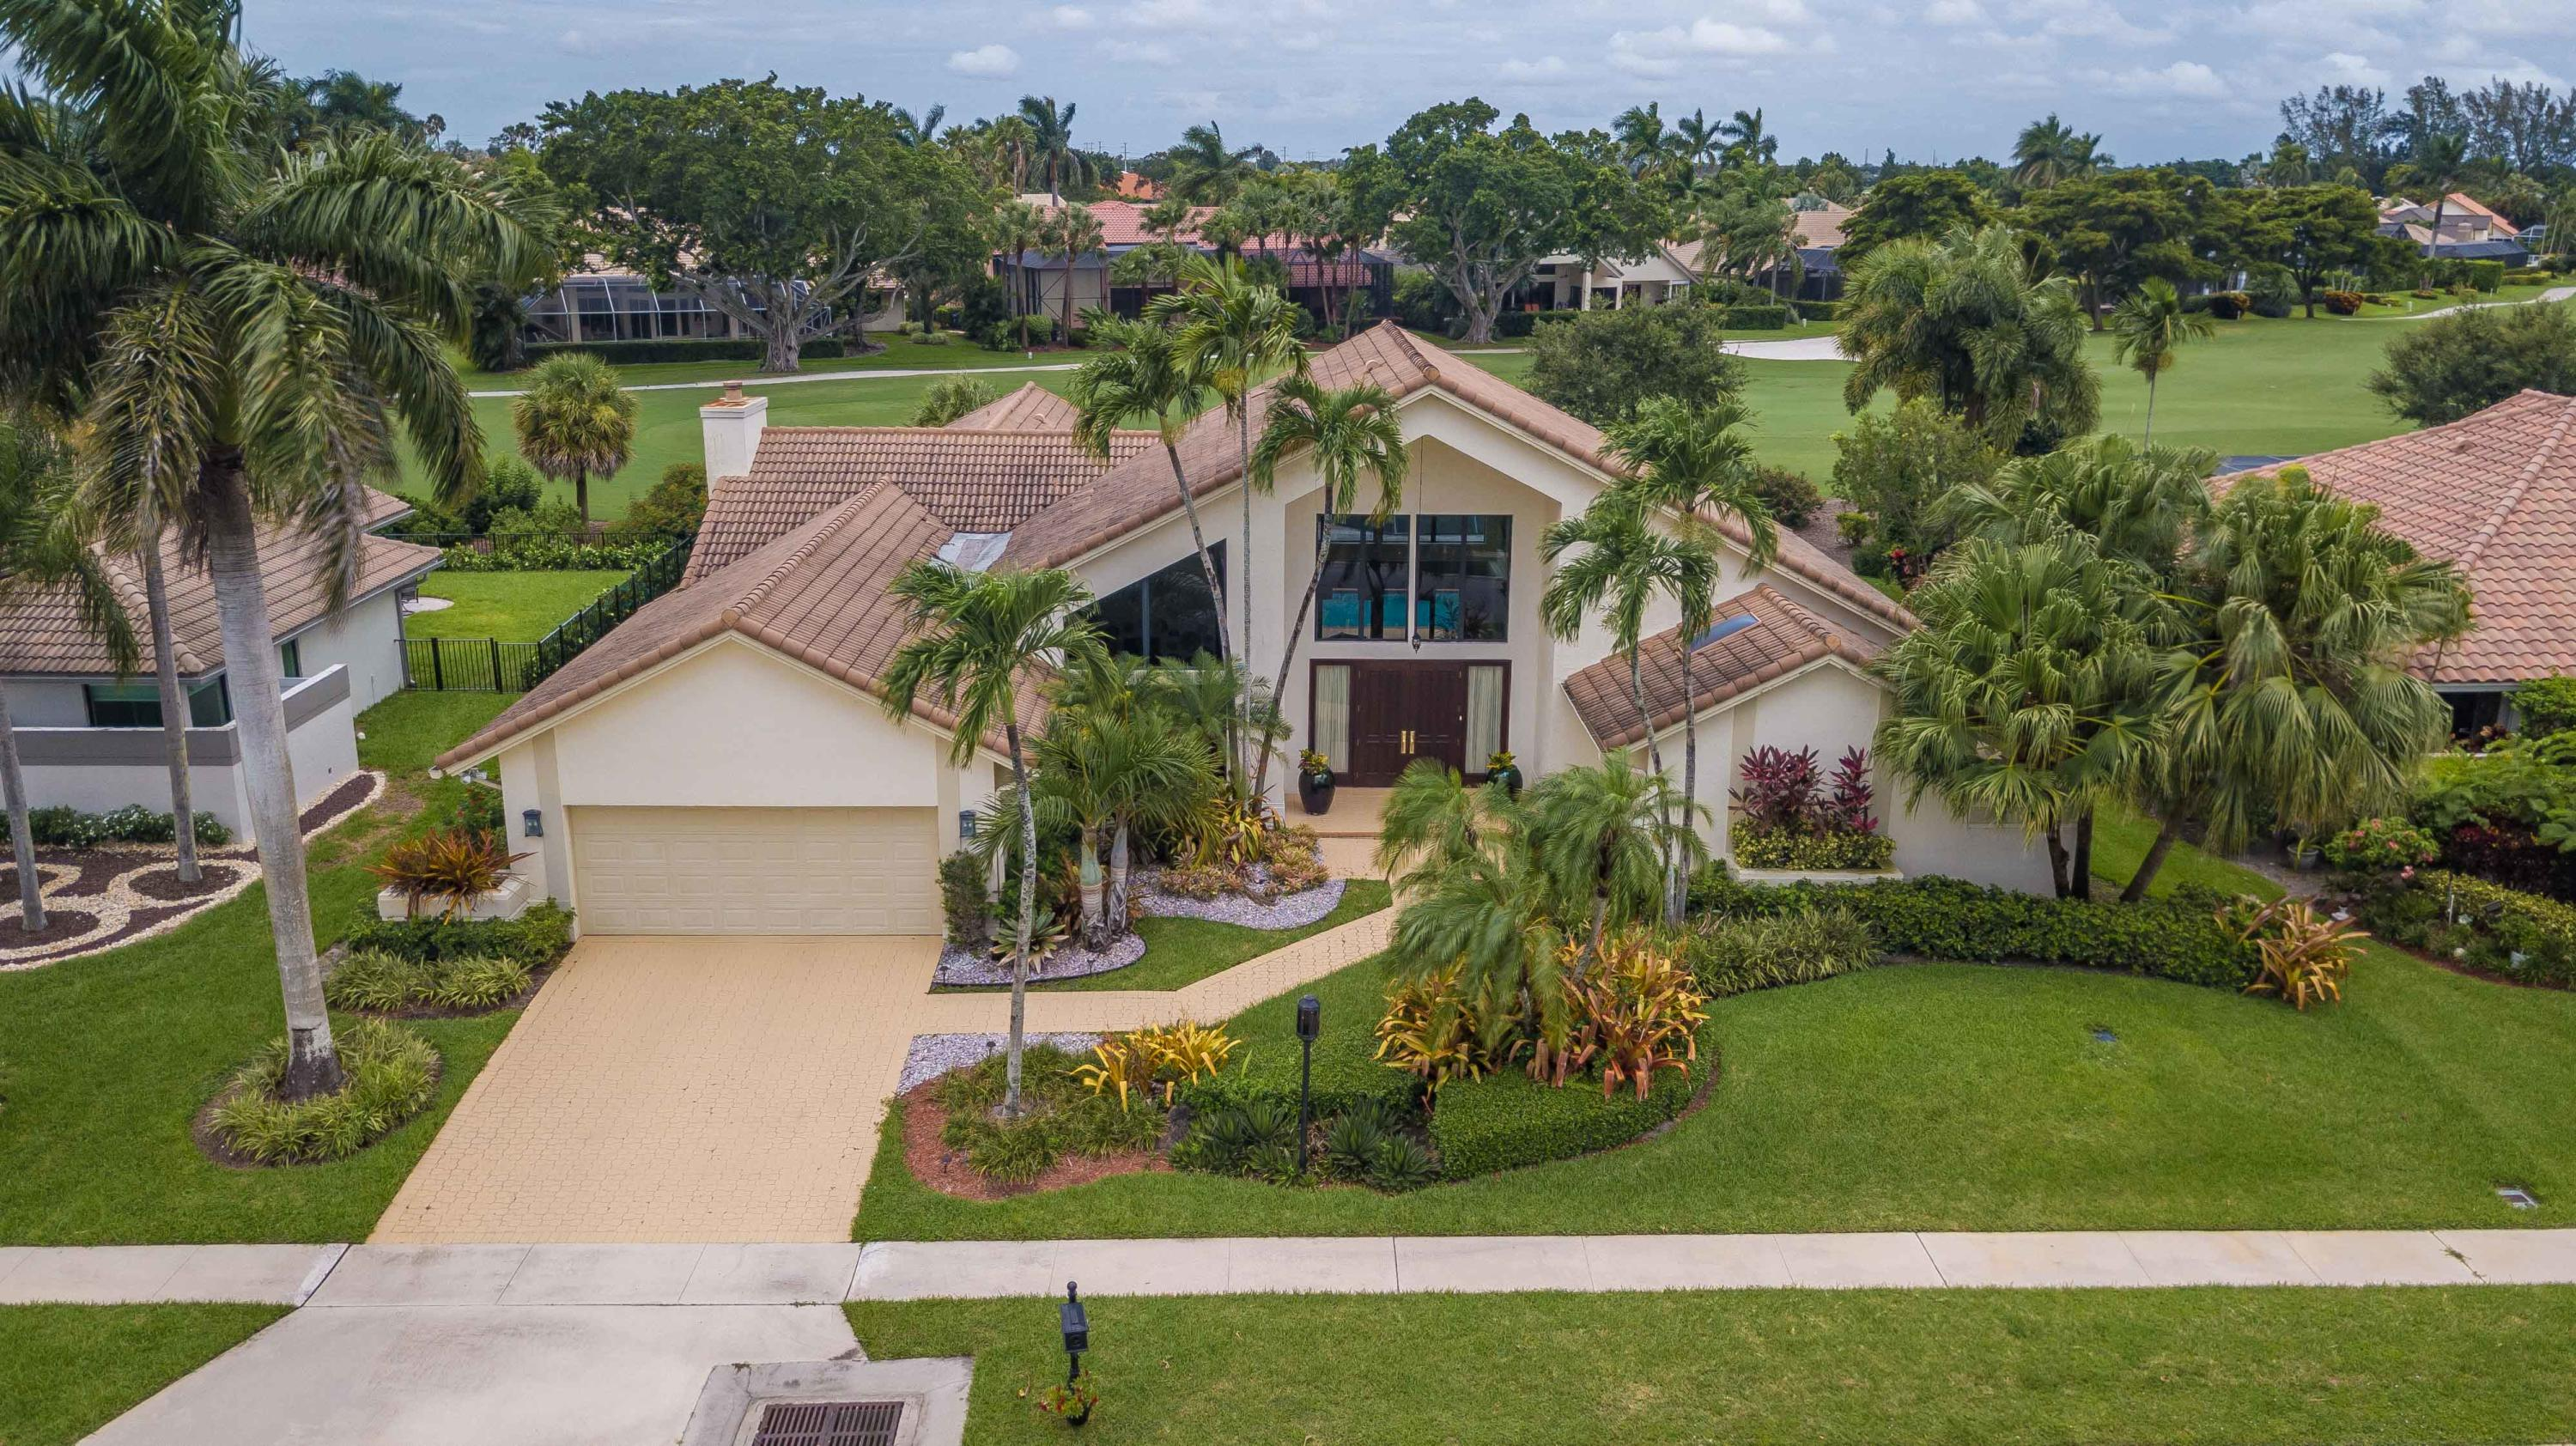 Photo of 17793 Southwick Way, Boca Raton, FL 33498